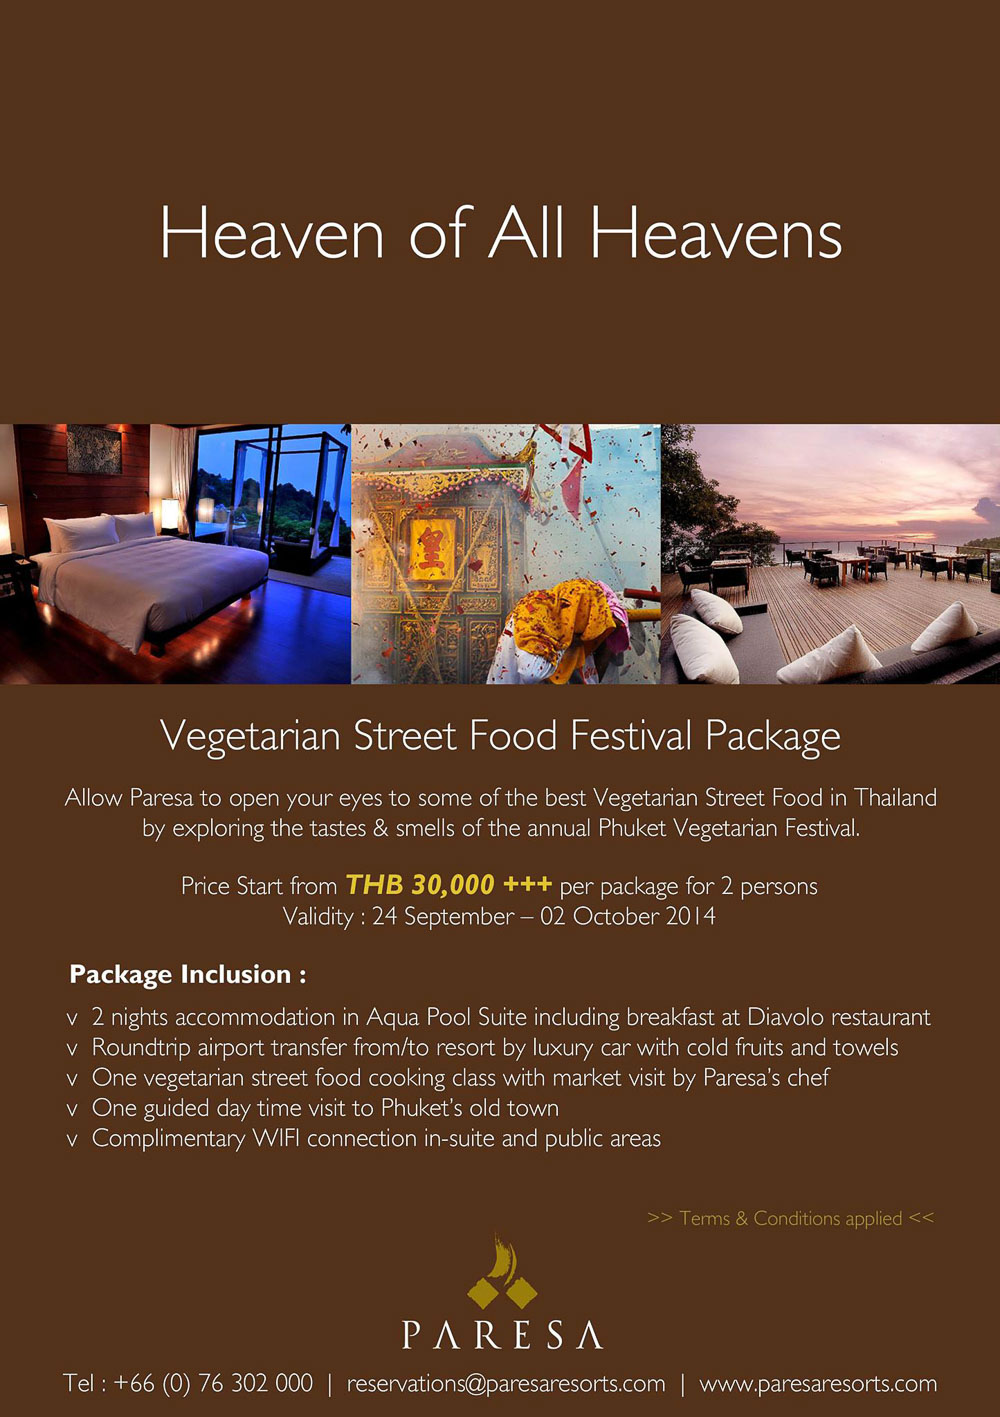 Paresa Resort Vegetarian Street Food Festival Package